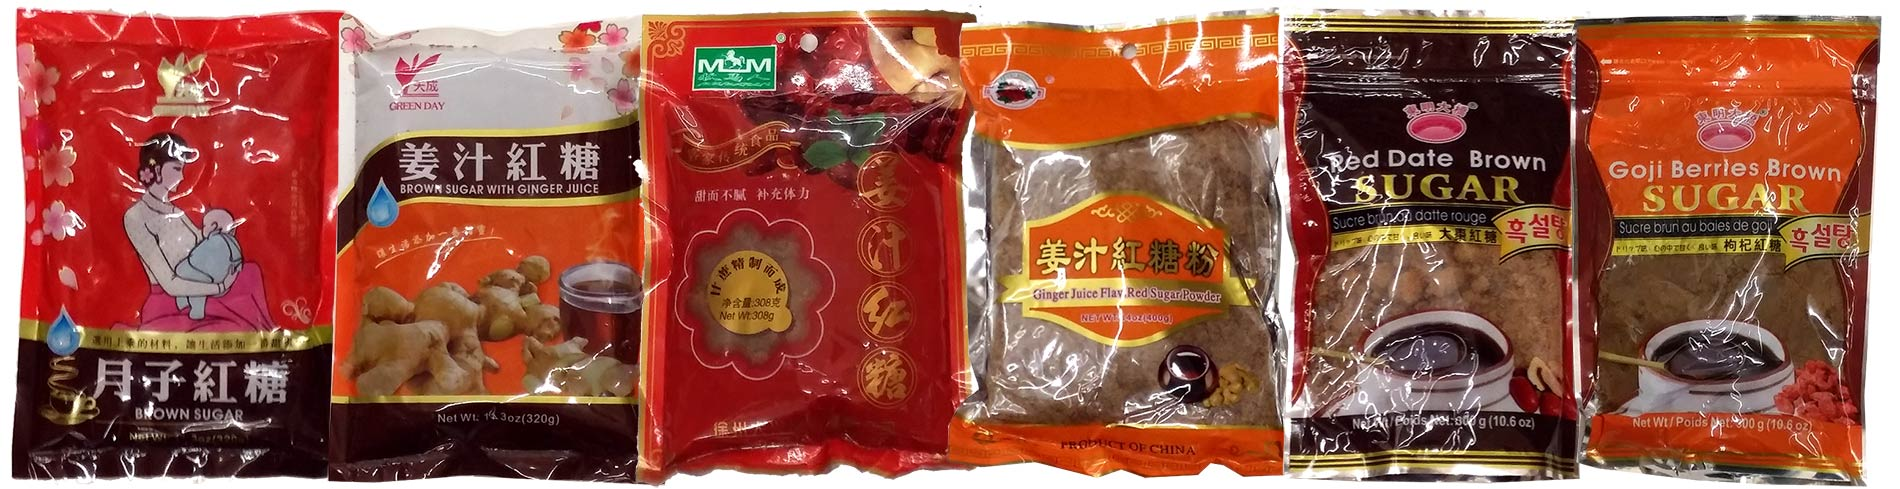 Chinese Herbal Brown Sugars in US Supermarkets